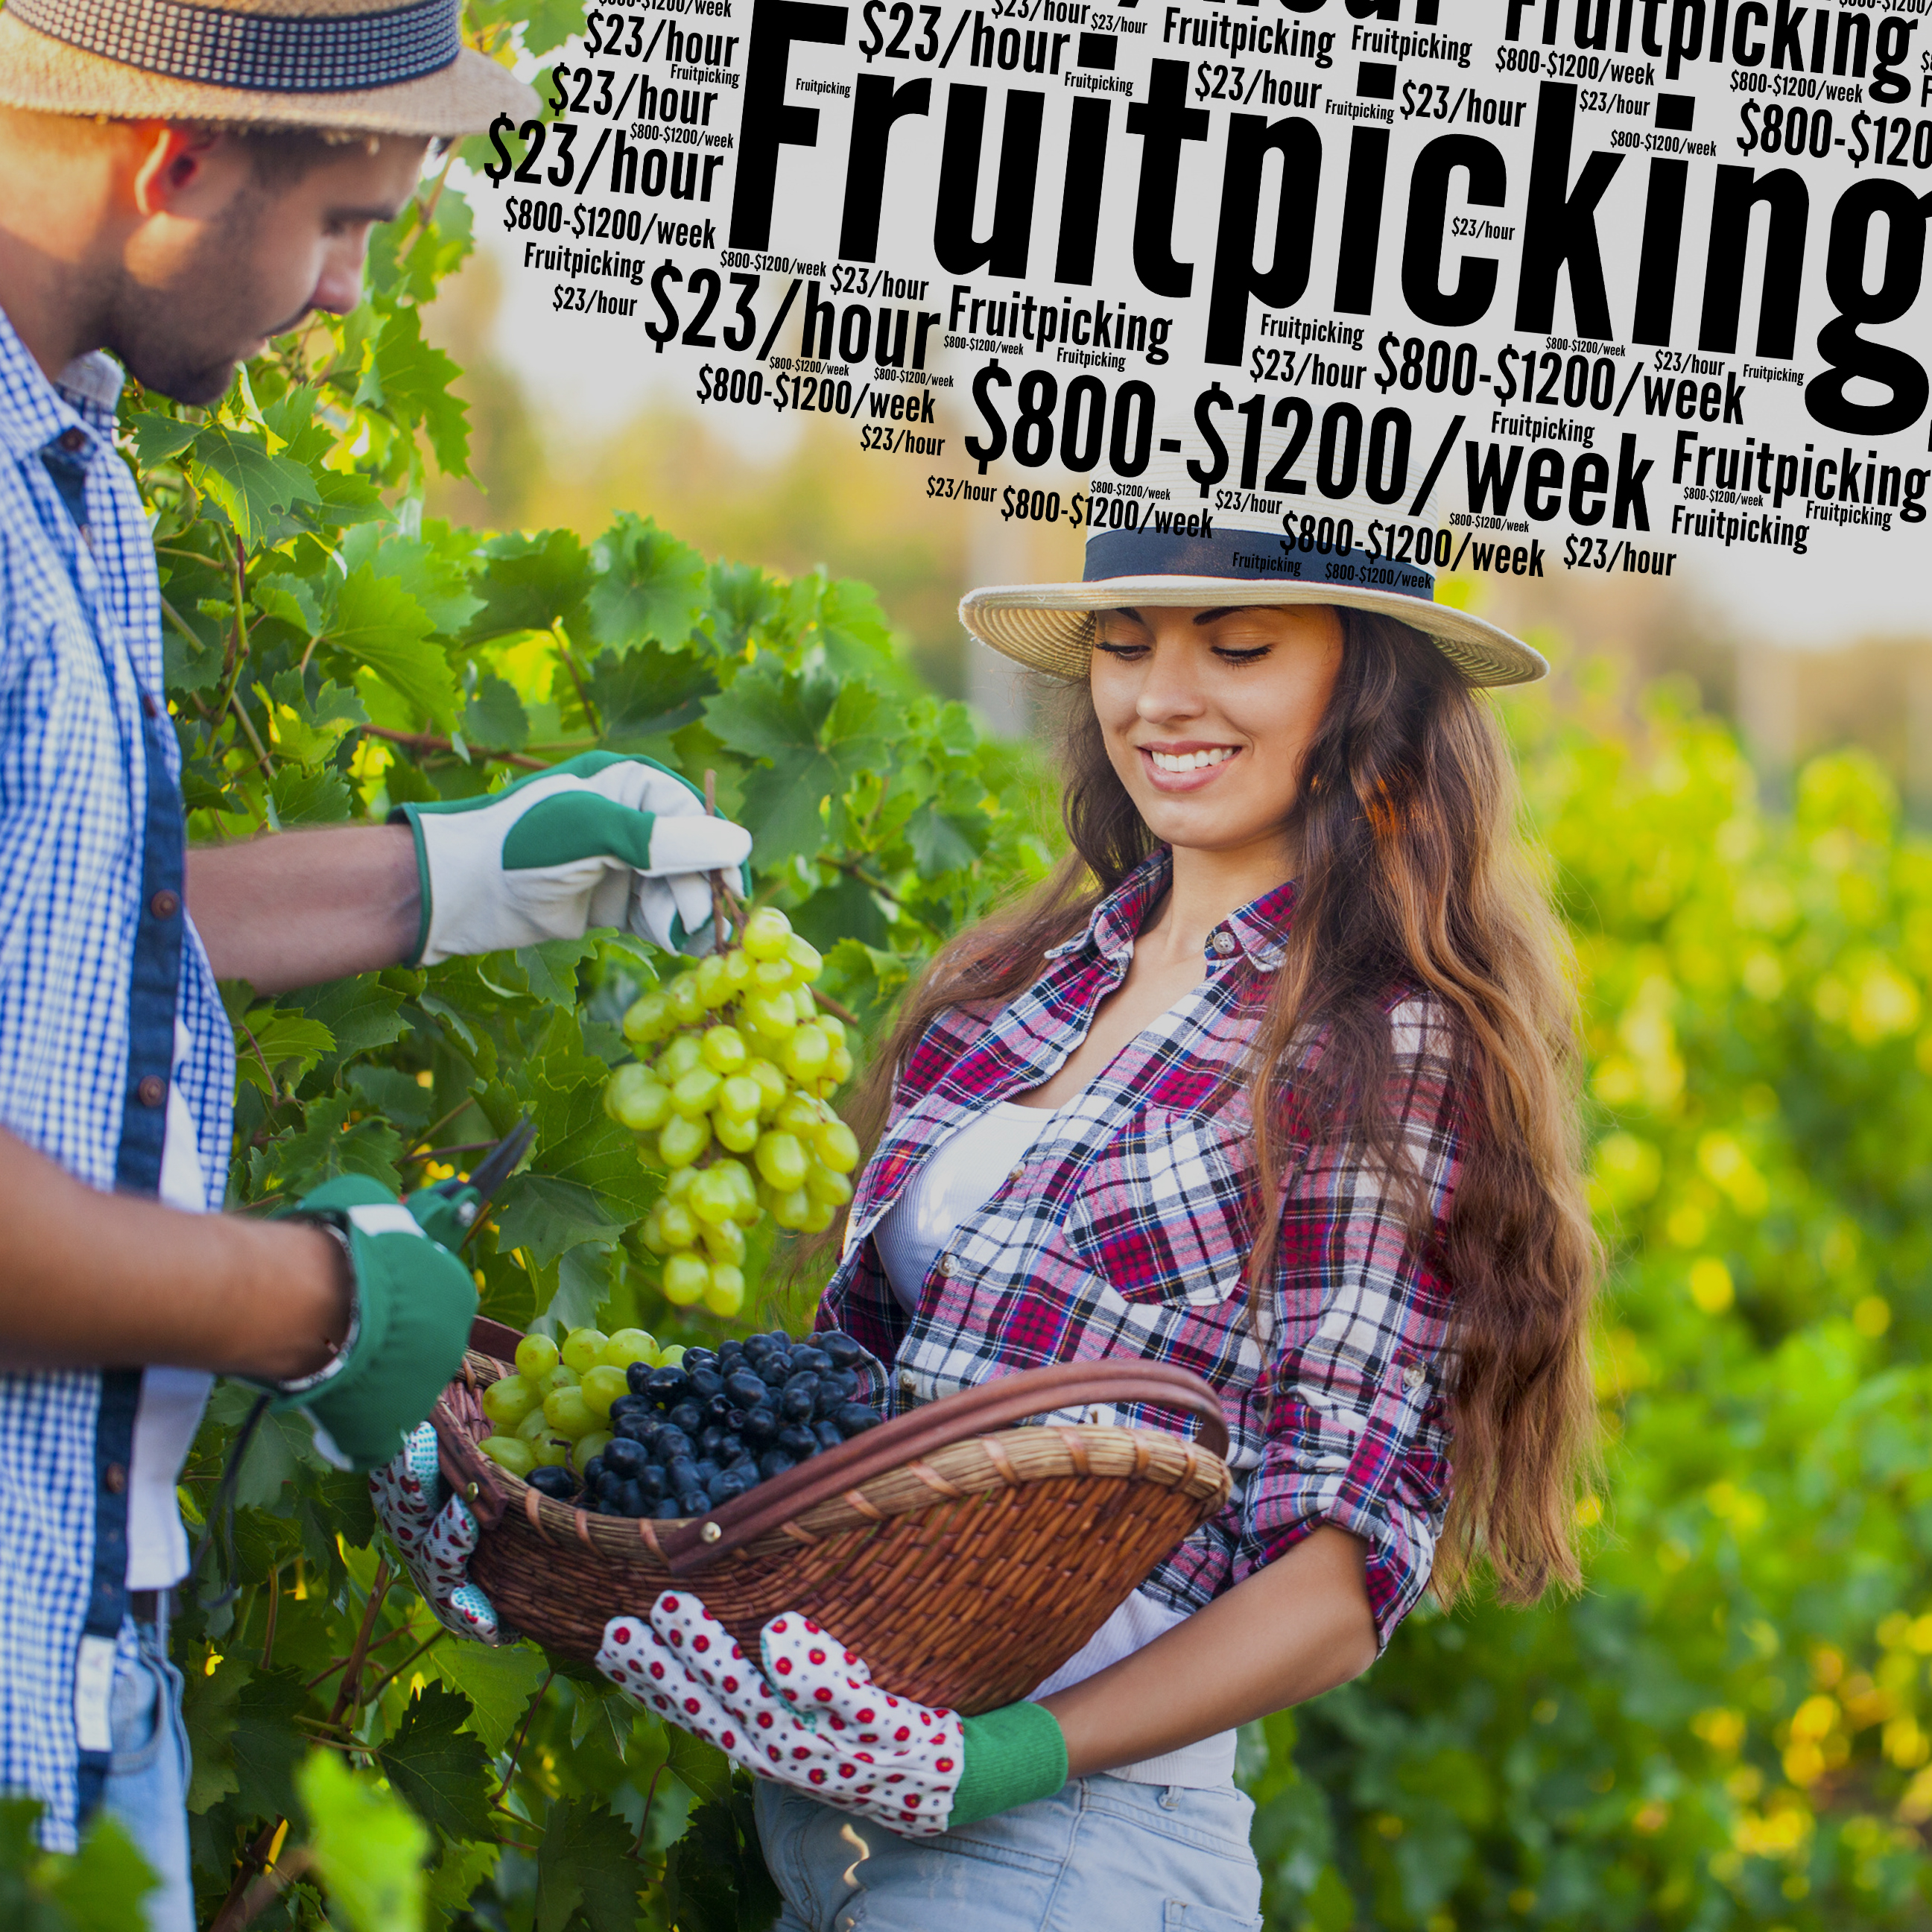 fruitpicking